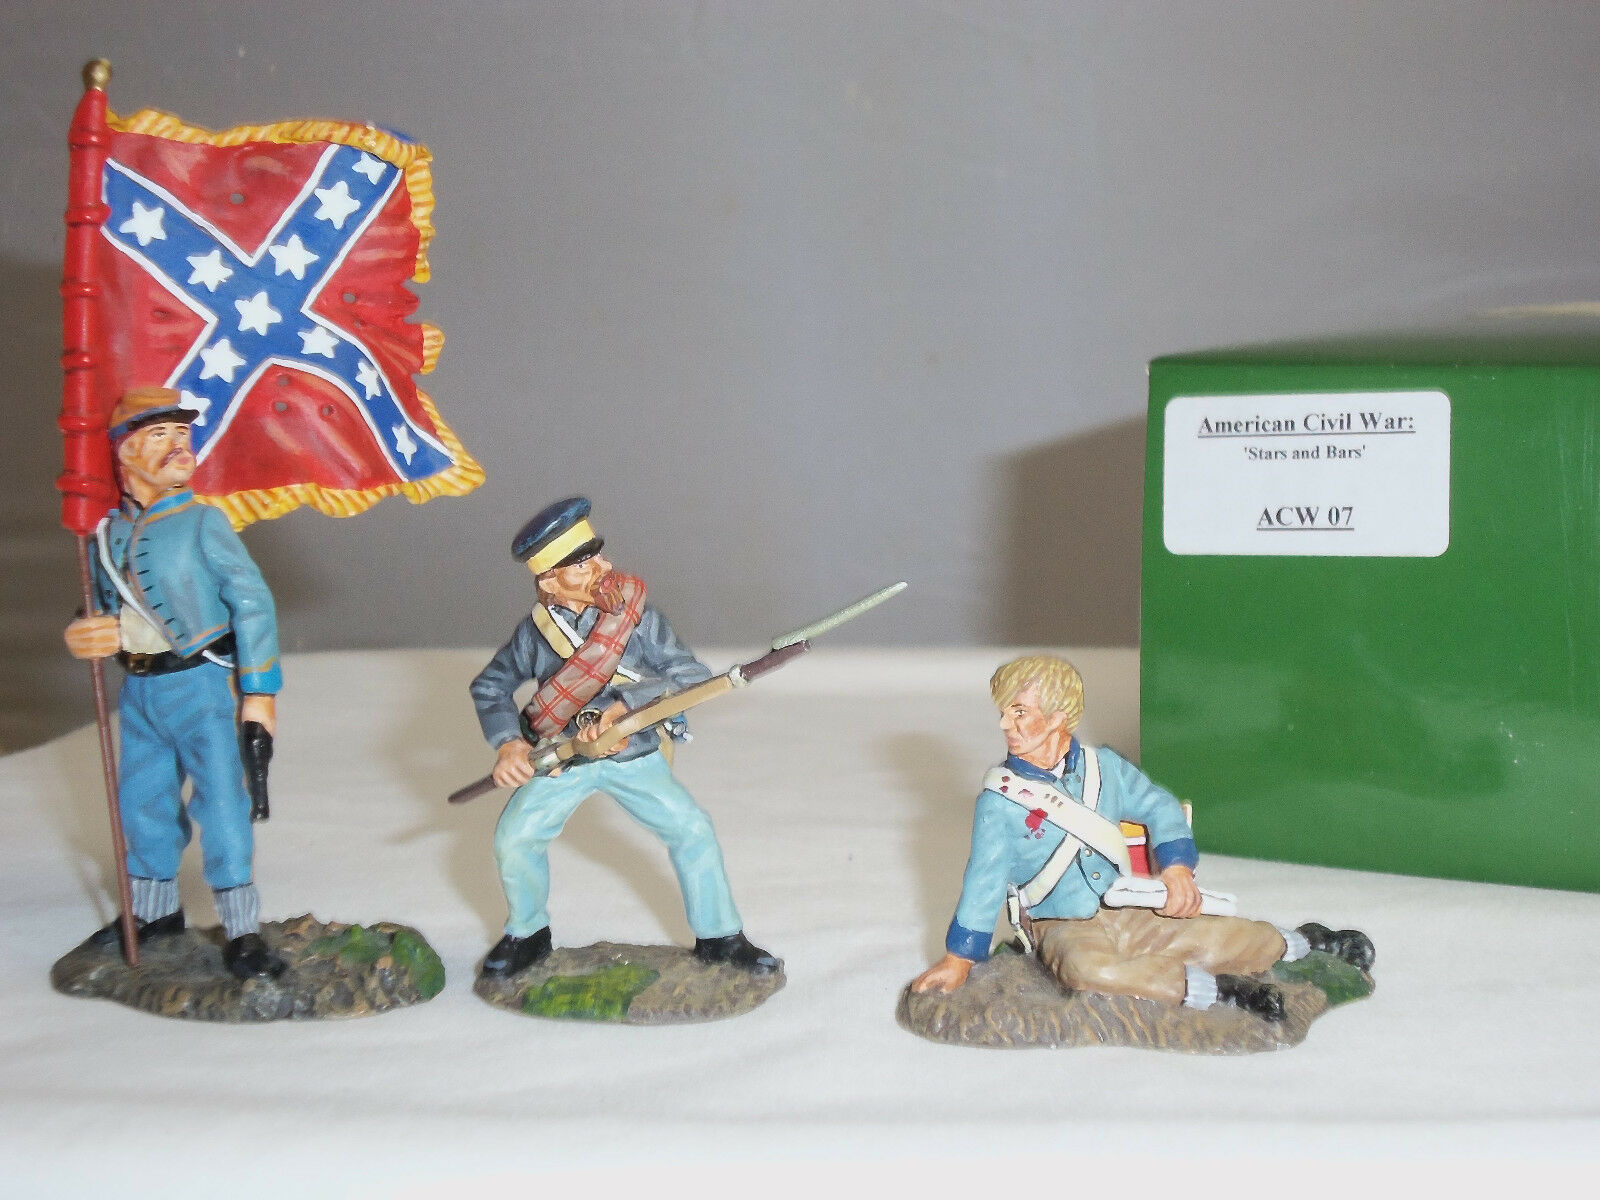 KING AND COUNTRY ACW07 STARS AND BARS AMERICAN CIVIL WAR TOY SOLDIER FIGURE SET